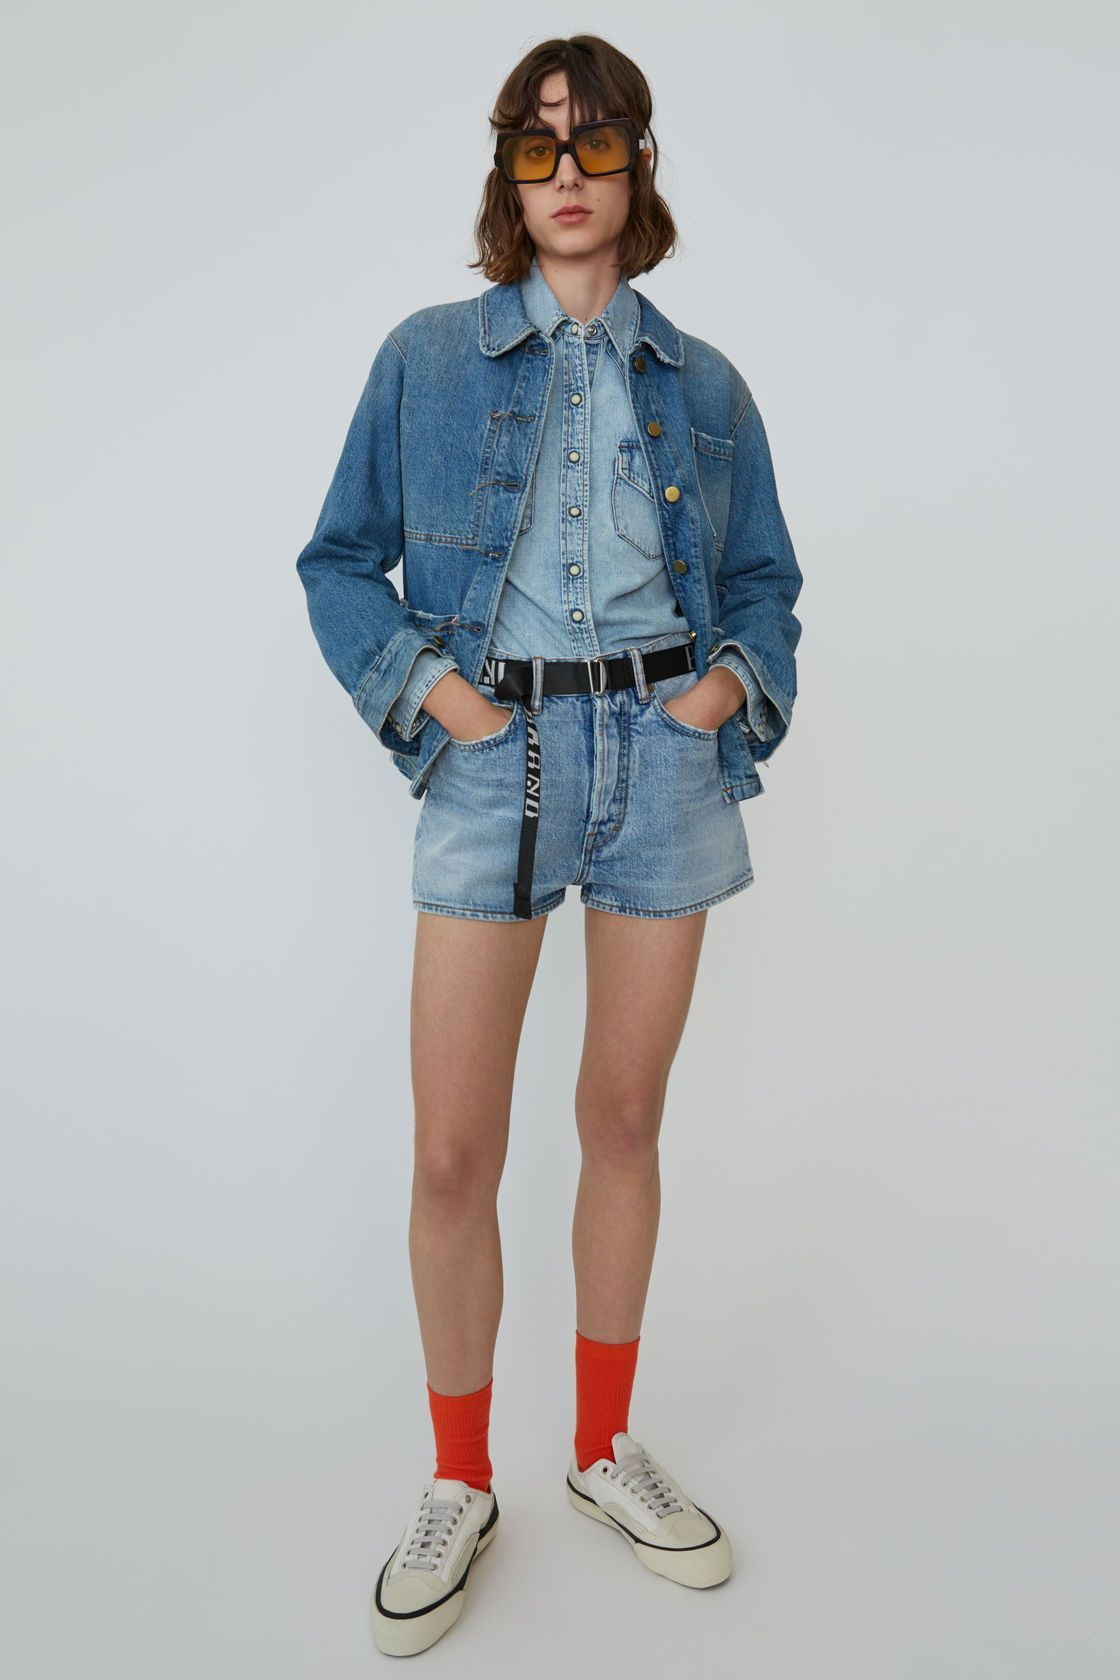 Denim shorts light blue $220 #lightblueshorts Acne Studios - Denim shorts Light blue #lightblueshorts